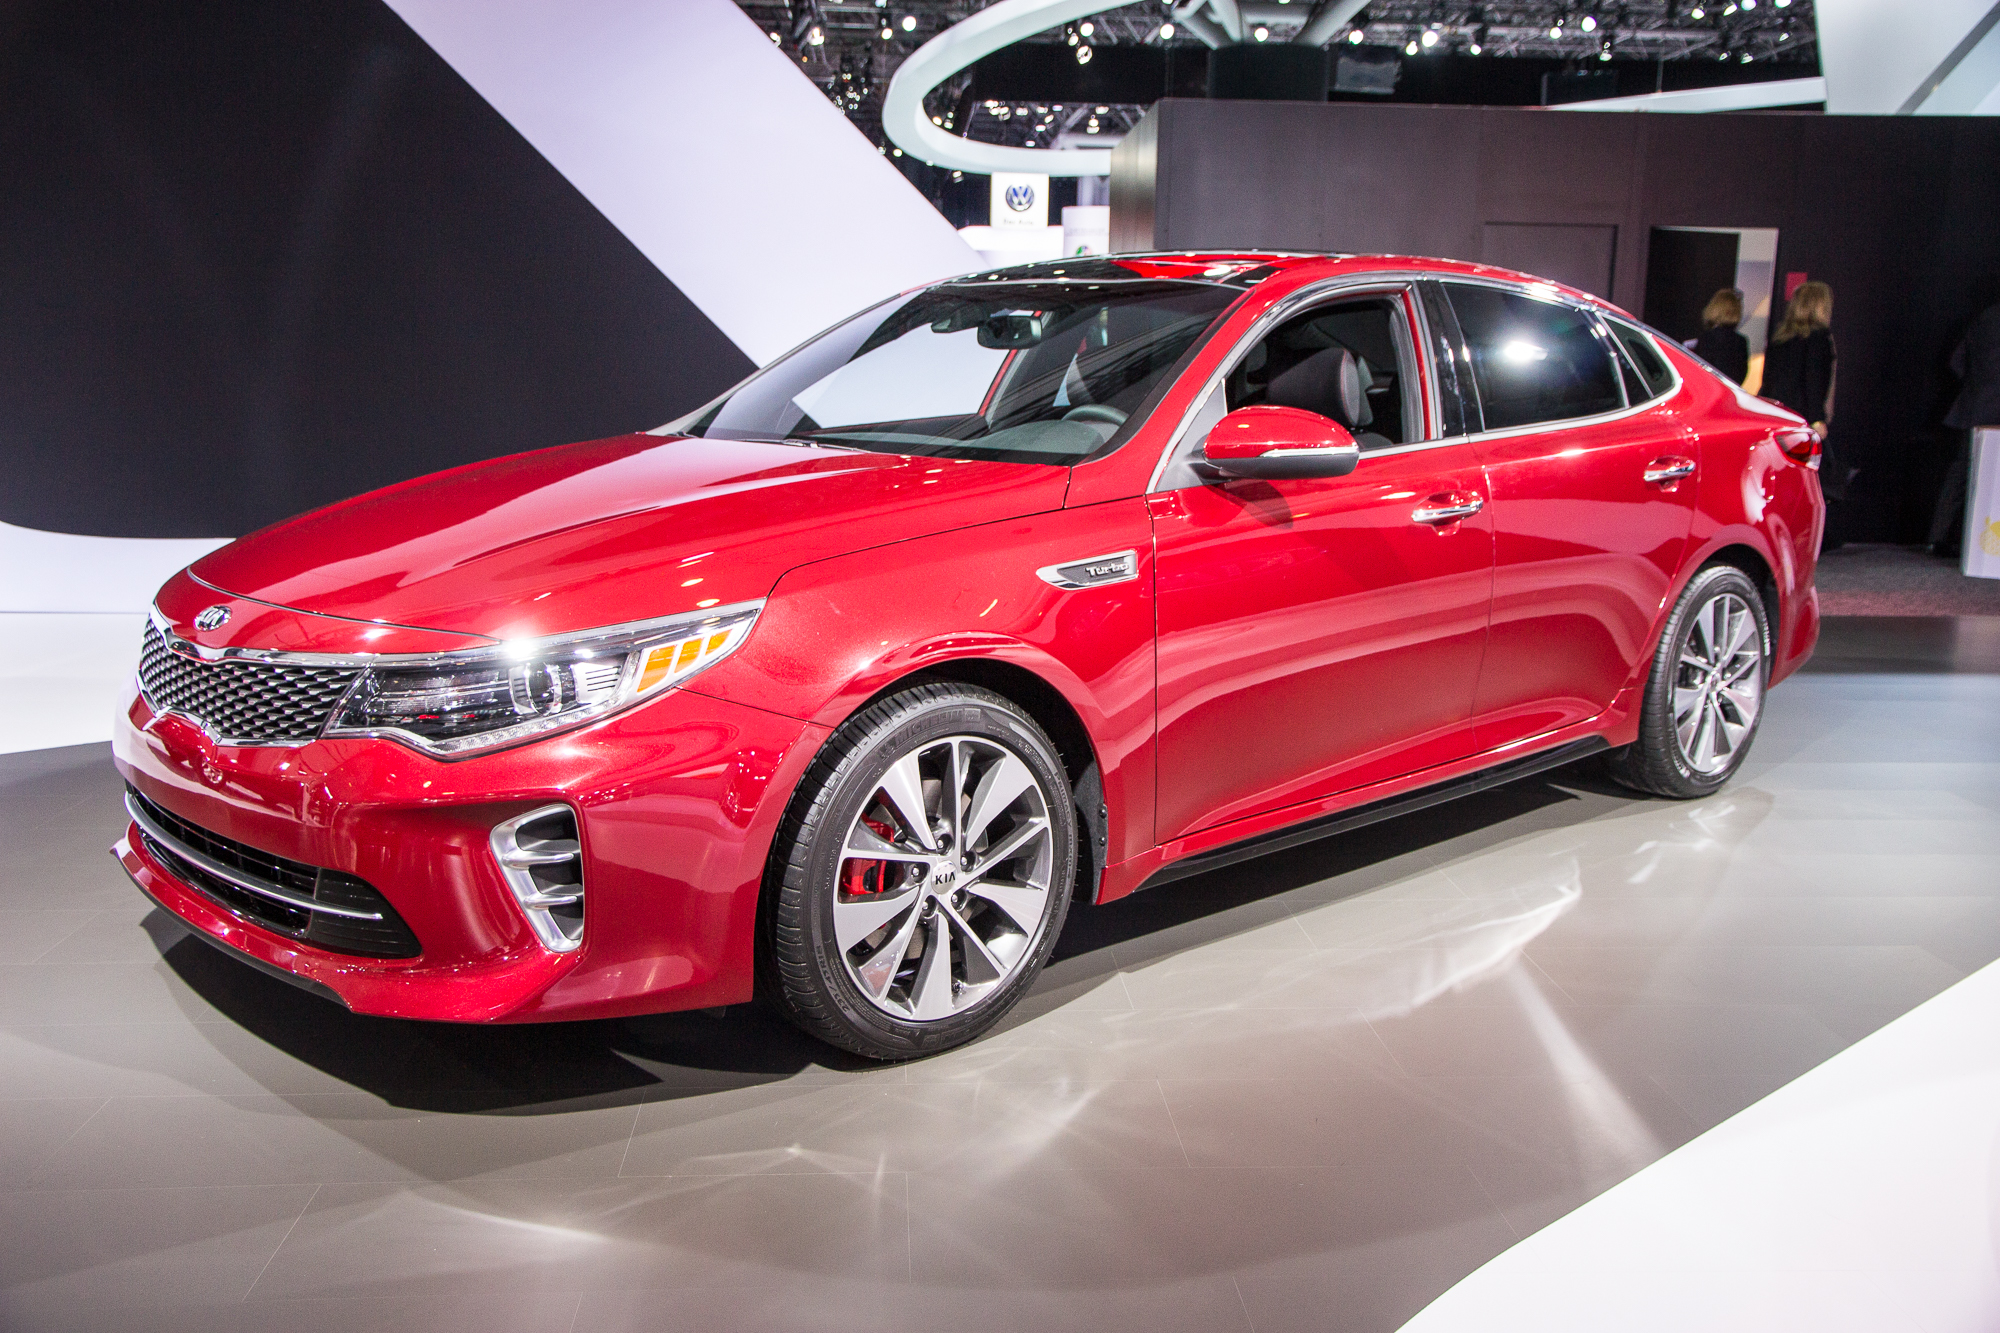 2016 kia optima video preview sciox Images